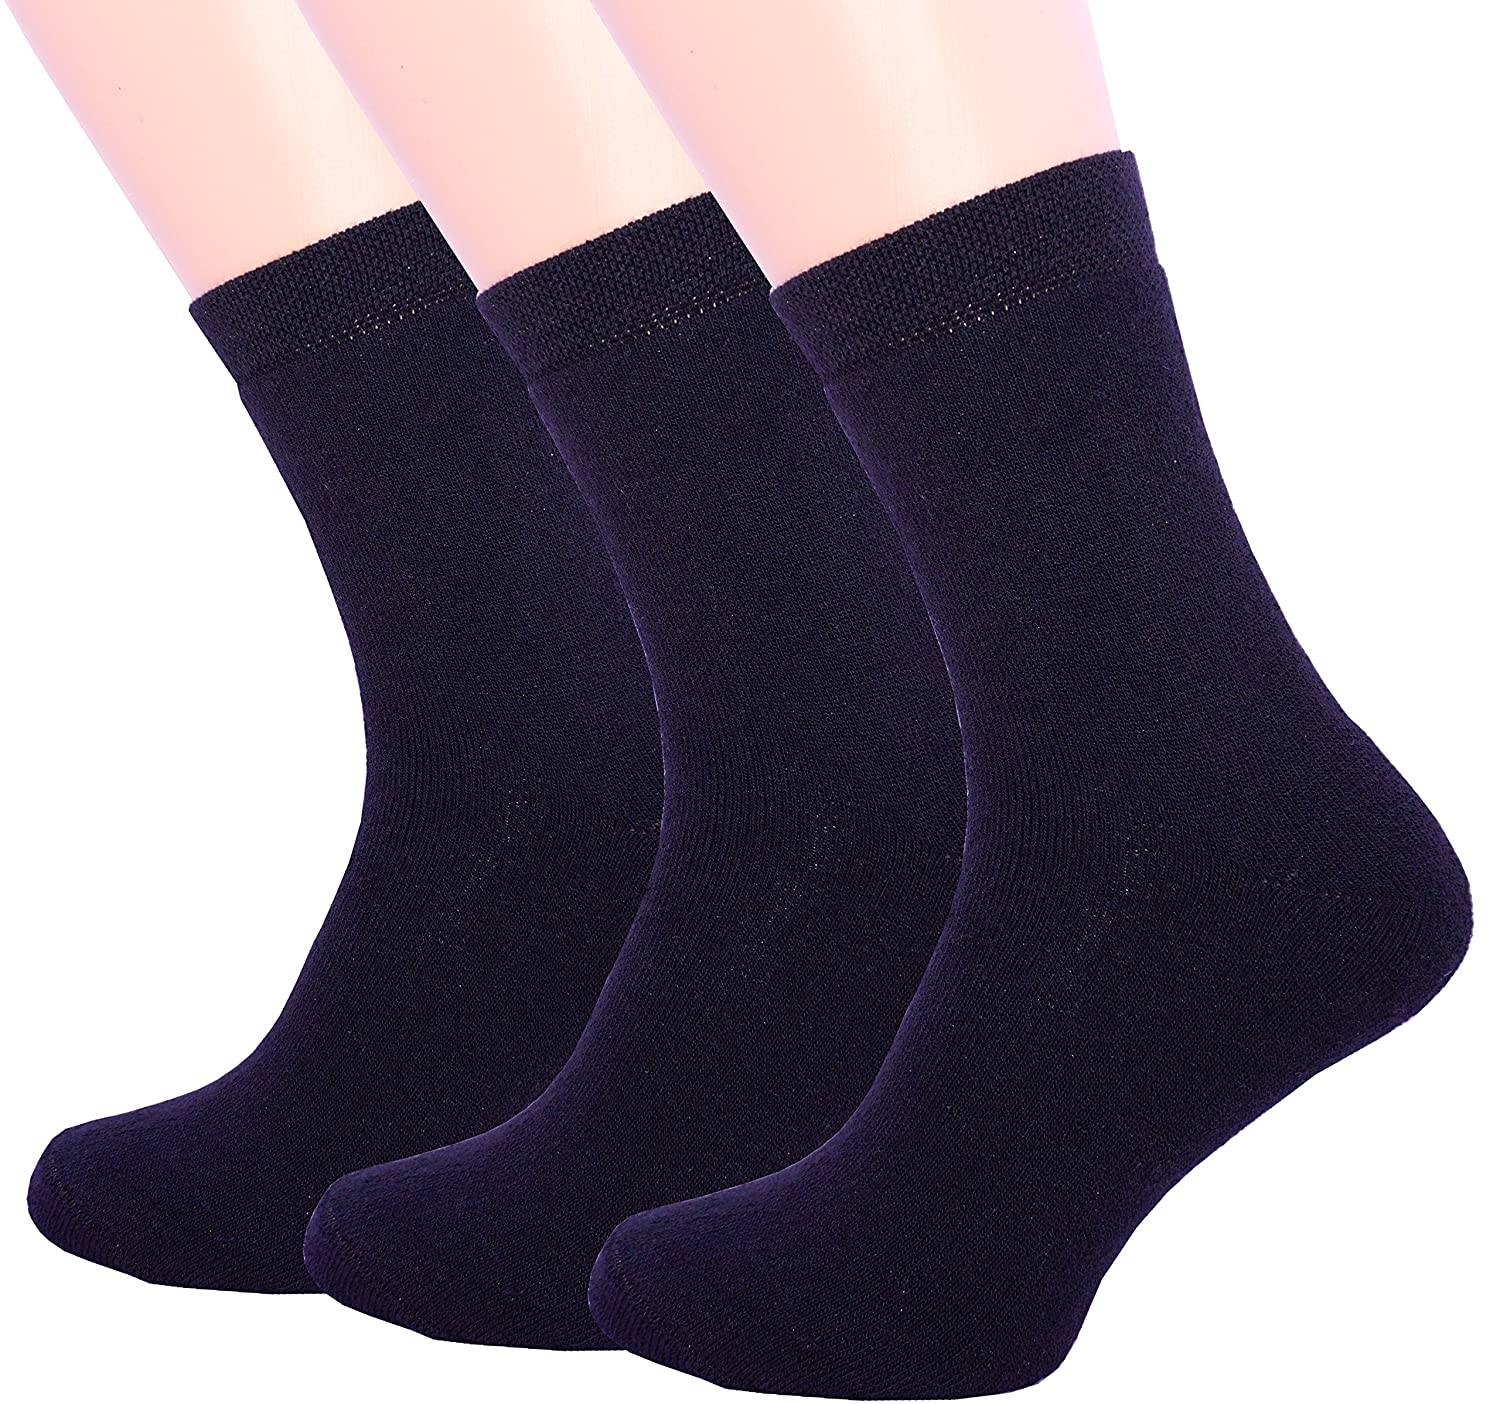 Mens Socks for Winter 3 Pair Warm Thermal Socks Pack Crew For Cold Weather winter dress socks